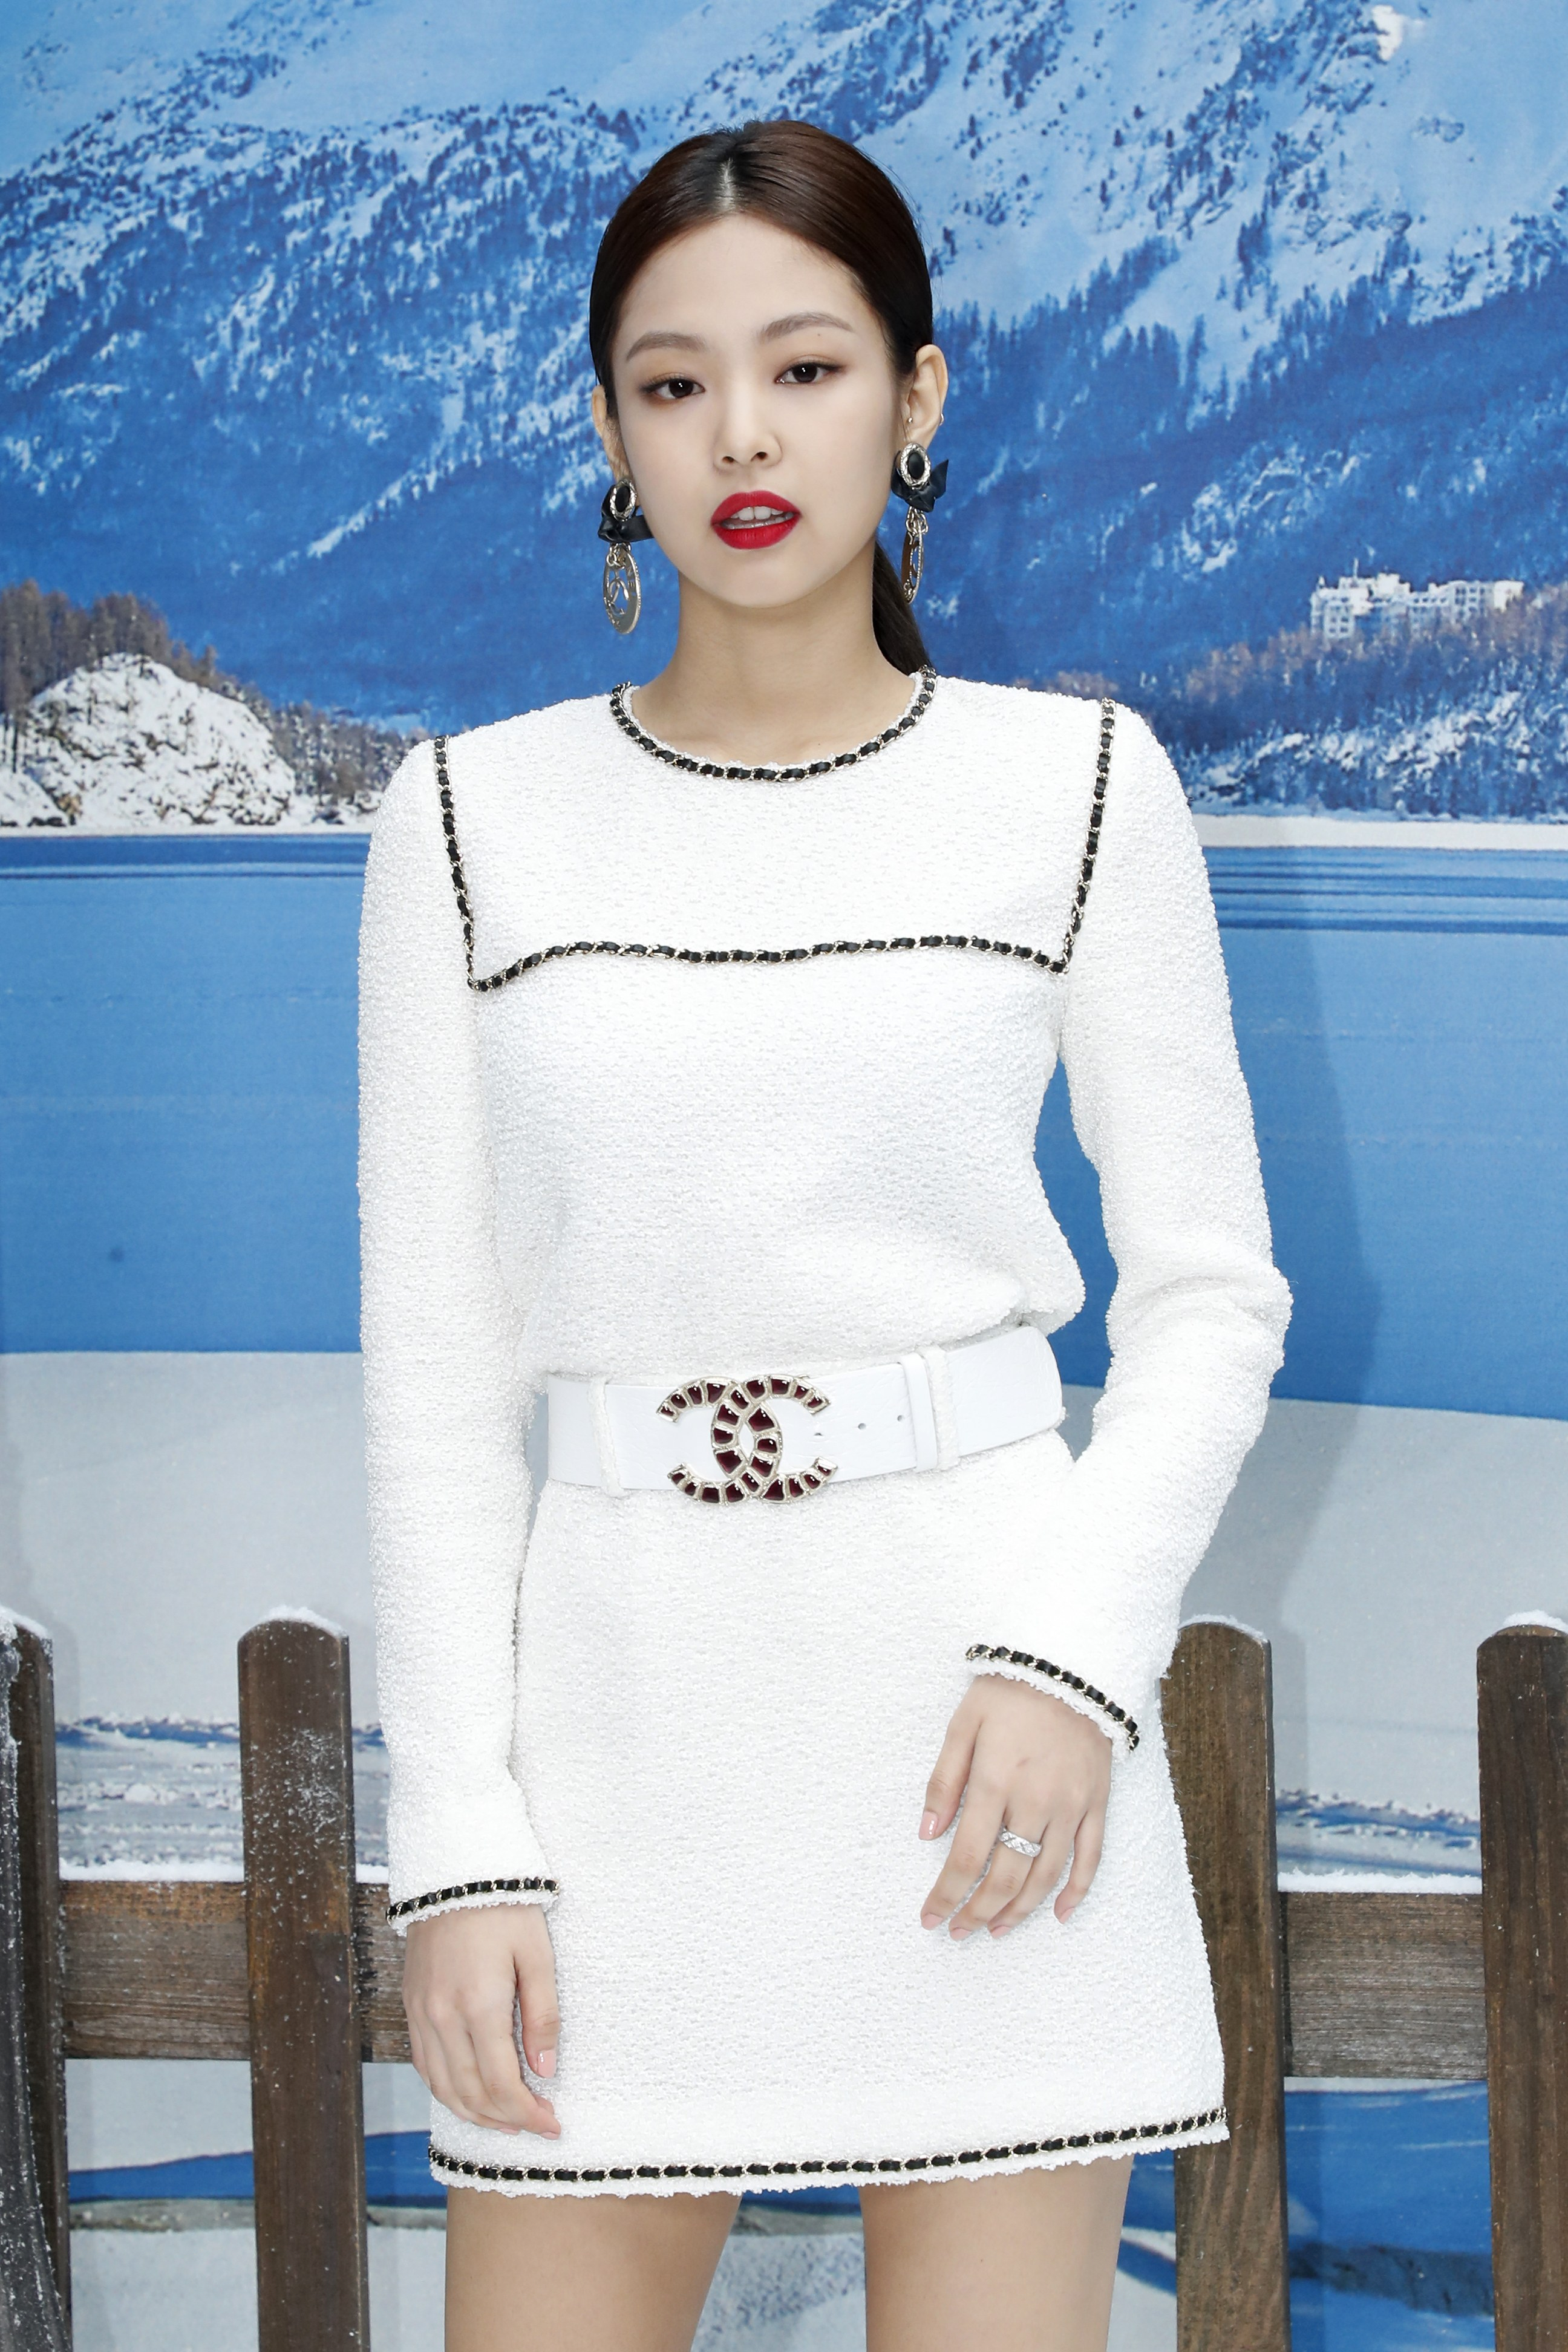 Jennie Blackpink at Chanel with low ponytail